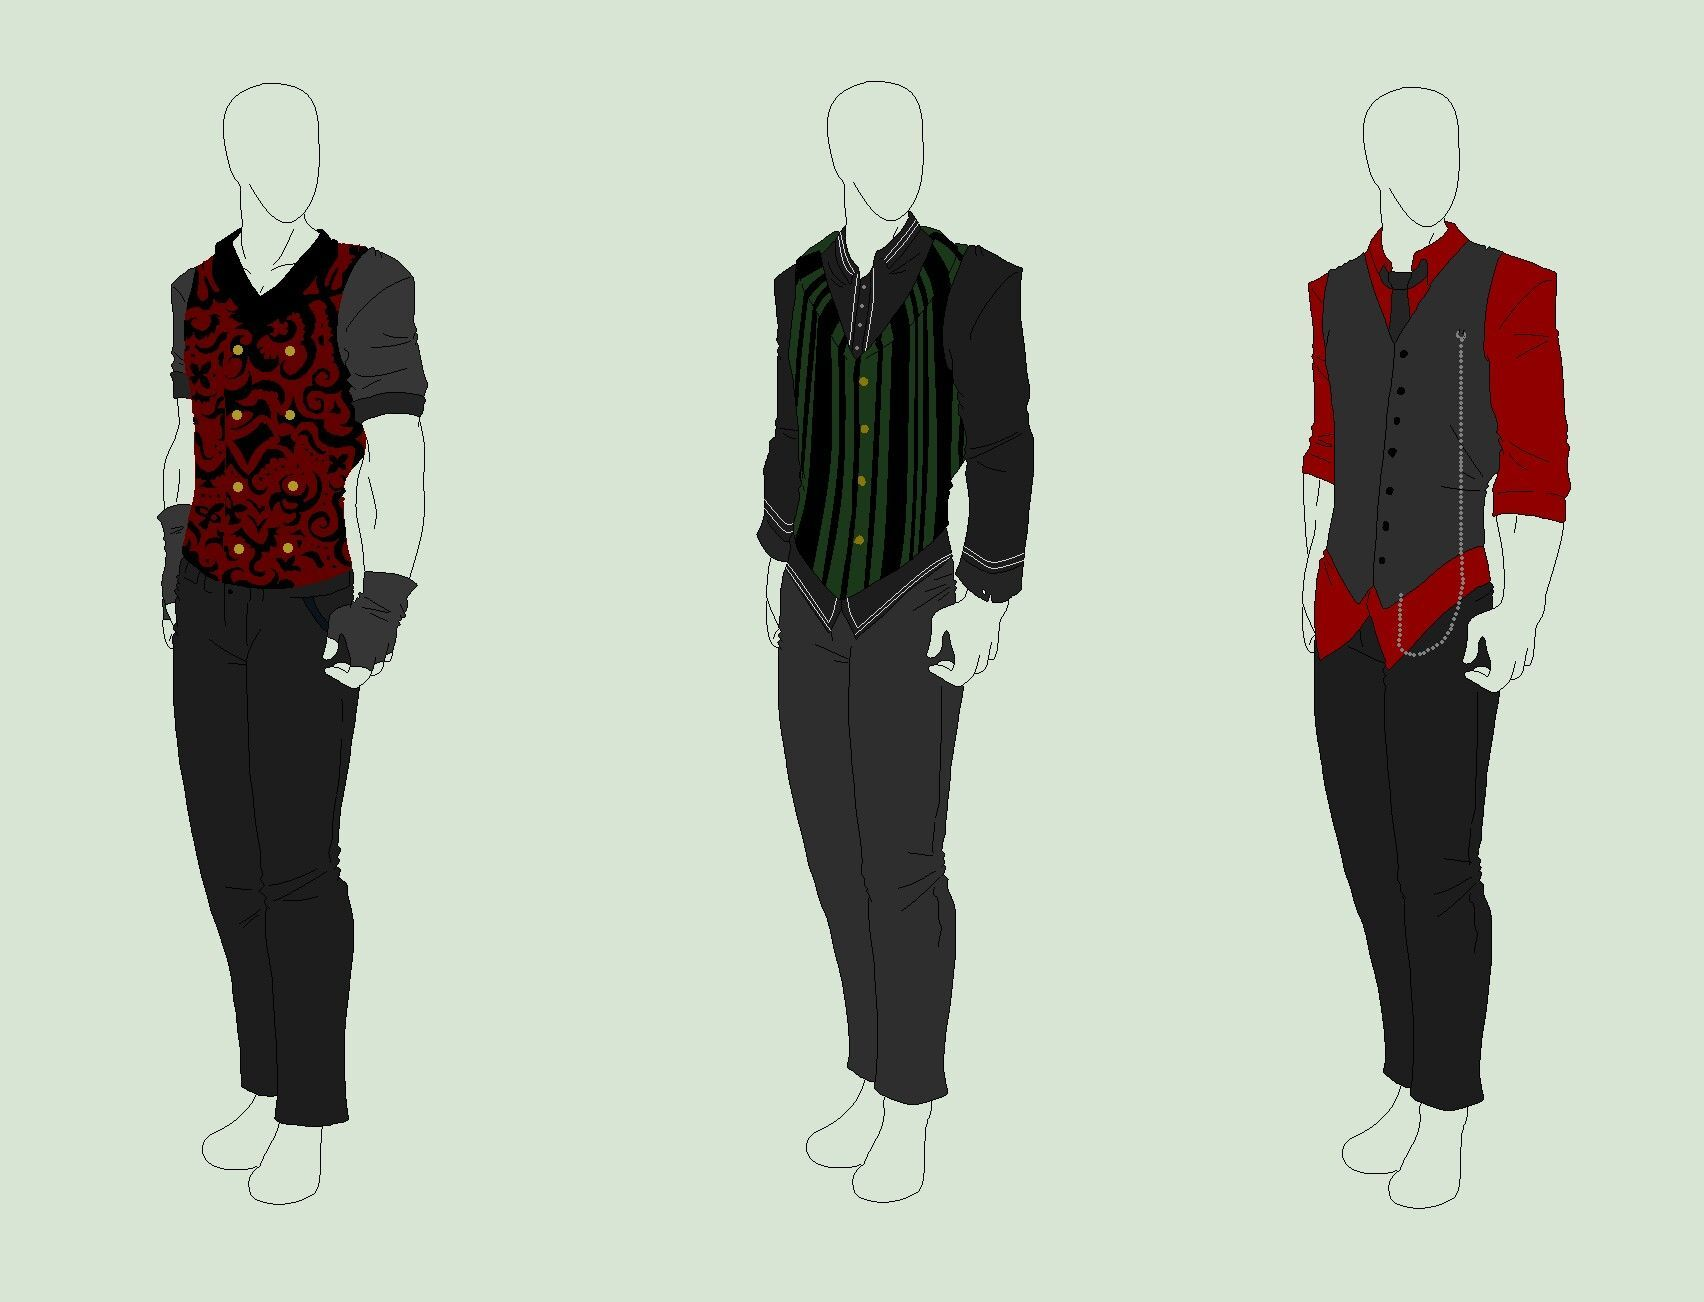 Image Result For Male Anime Outfits Anime Outfits Clothes Design Dressy Outfits